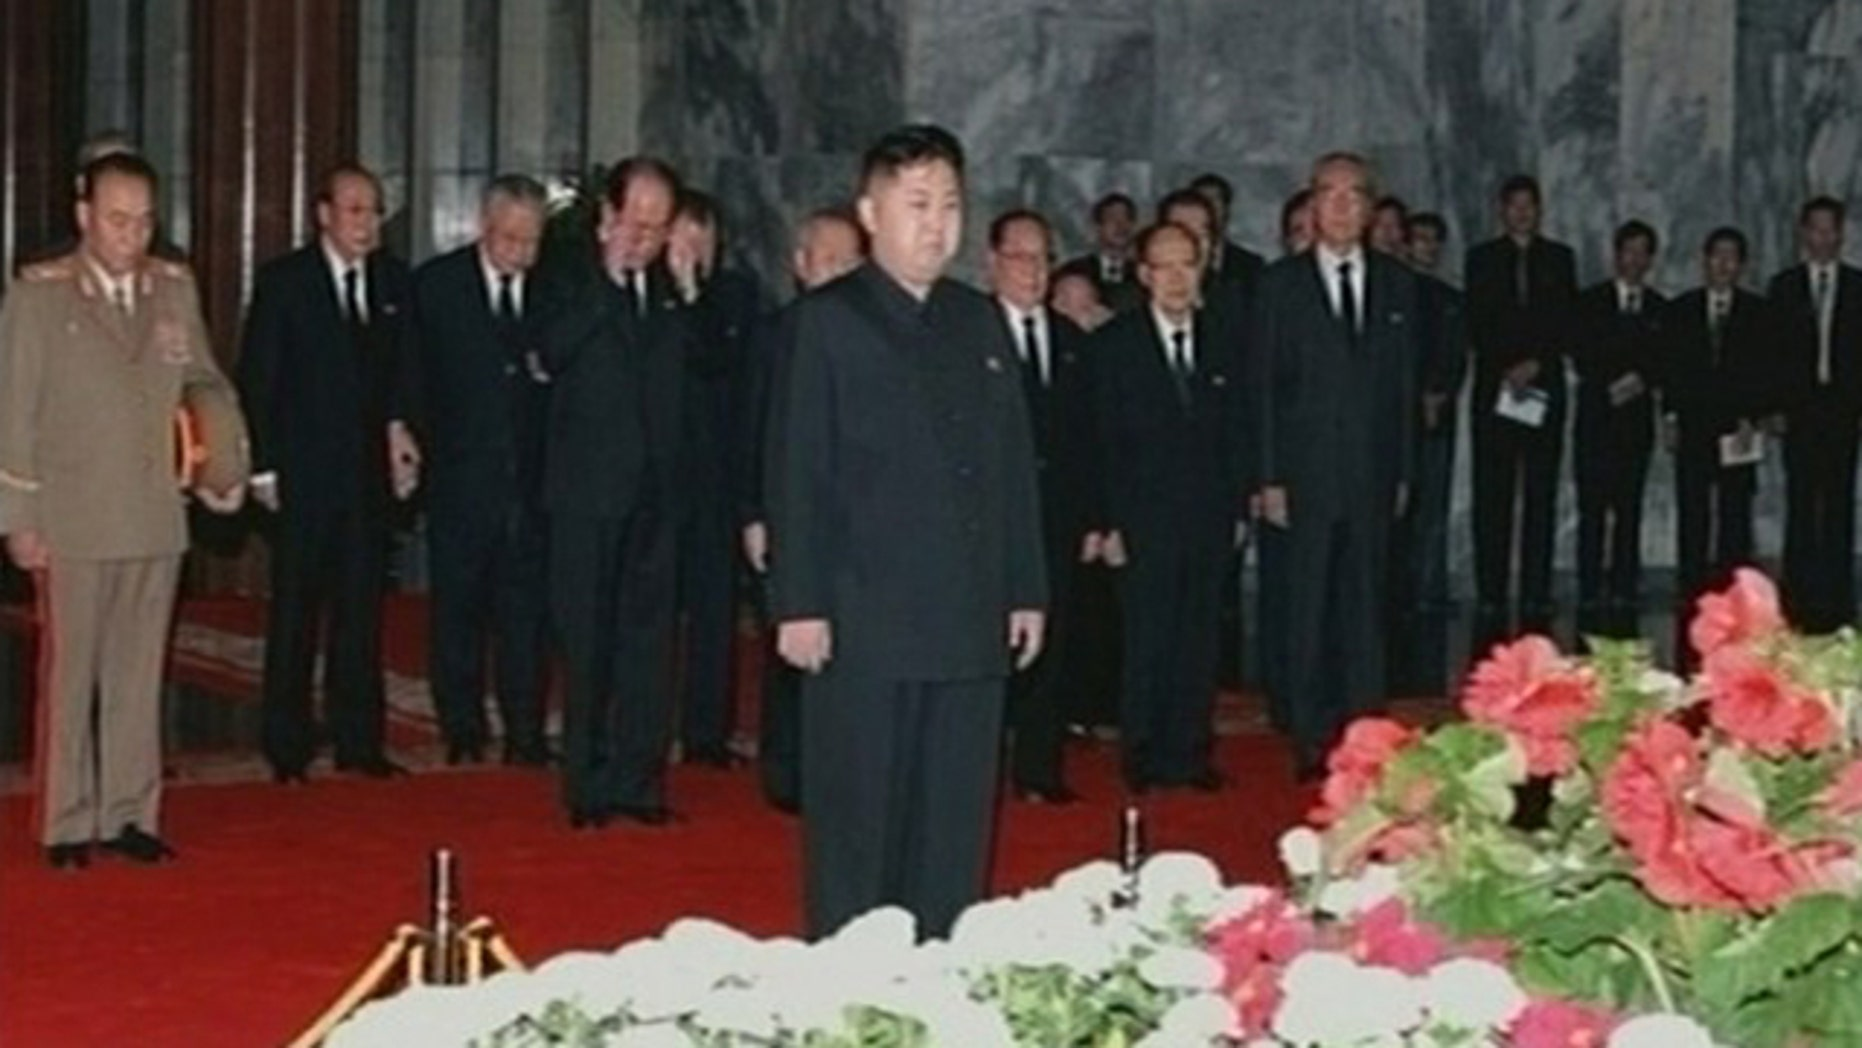 December 20, 2011: New North Korean ruler Kim Jong-un pays his respects to his father and former leader Kim Jong-il lying in state at the Kumsusan Memorial Palace in Pyongyang.